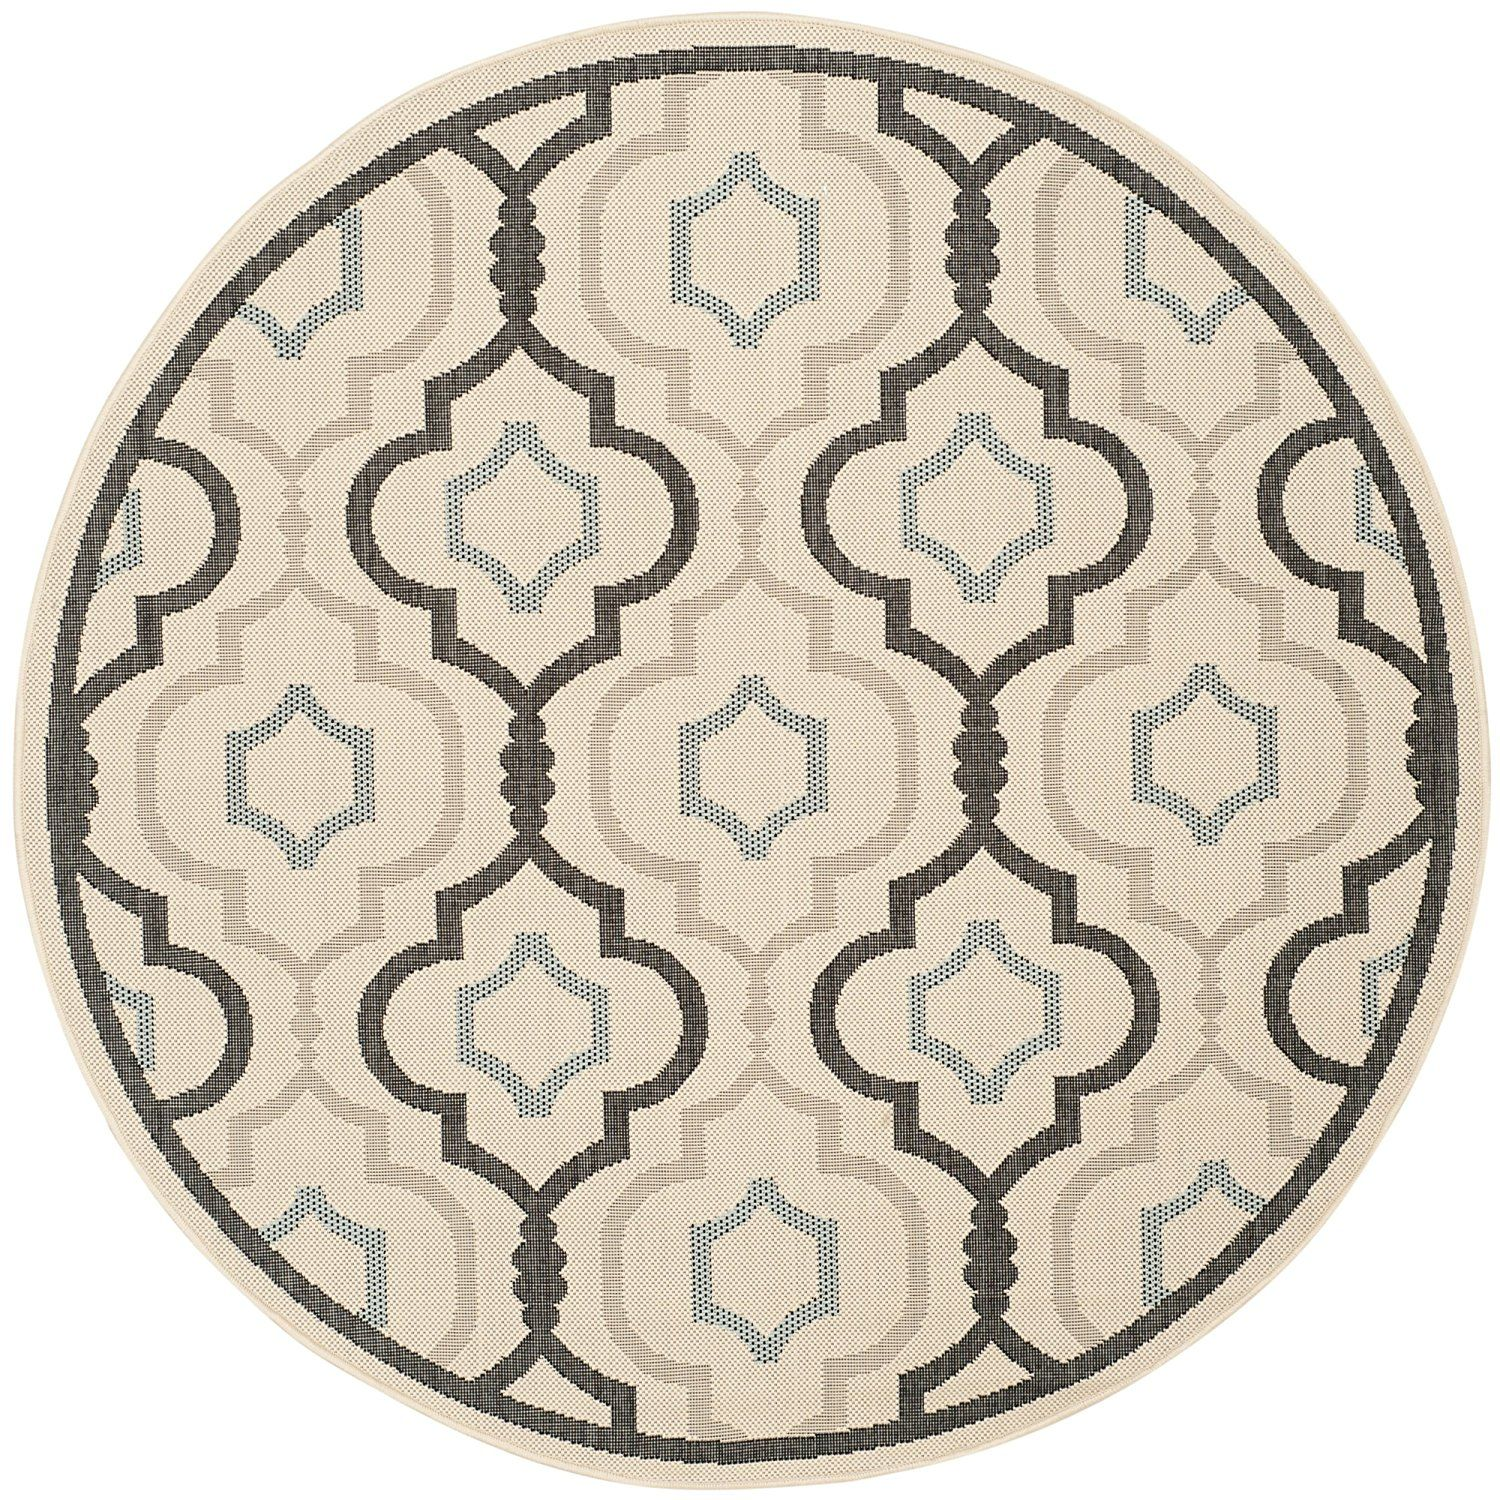 "Amazon.com: Safavieh Courtyard Collection CY7938-256A1 Beige and Black Indoor/ Outdoor Area Rug, 2 feet by 3 feet 7 inches (2' x 3'7""): Kitchen & Dining"